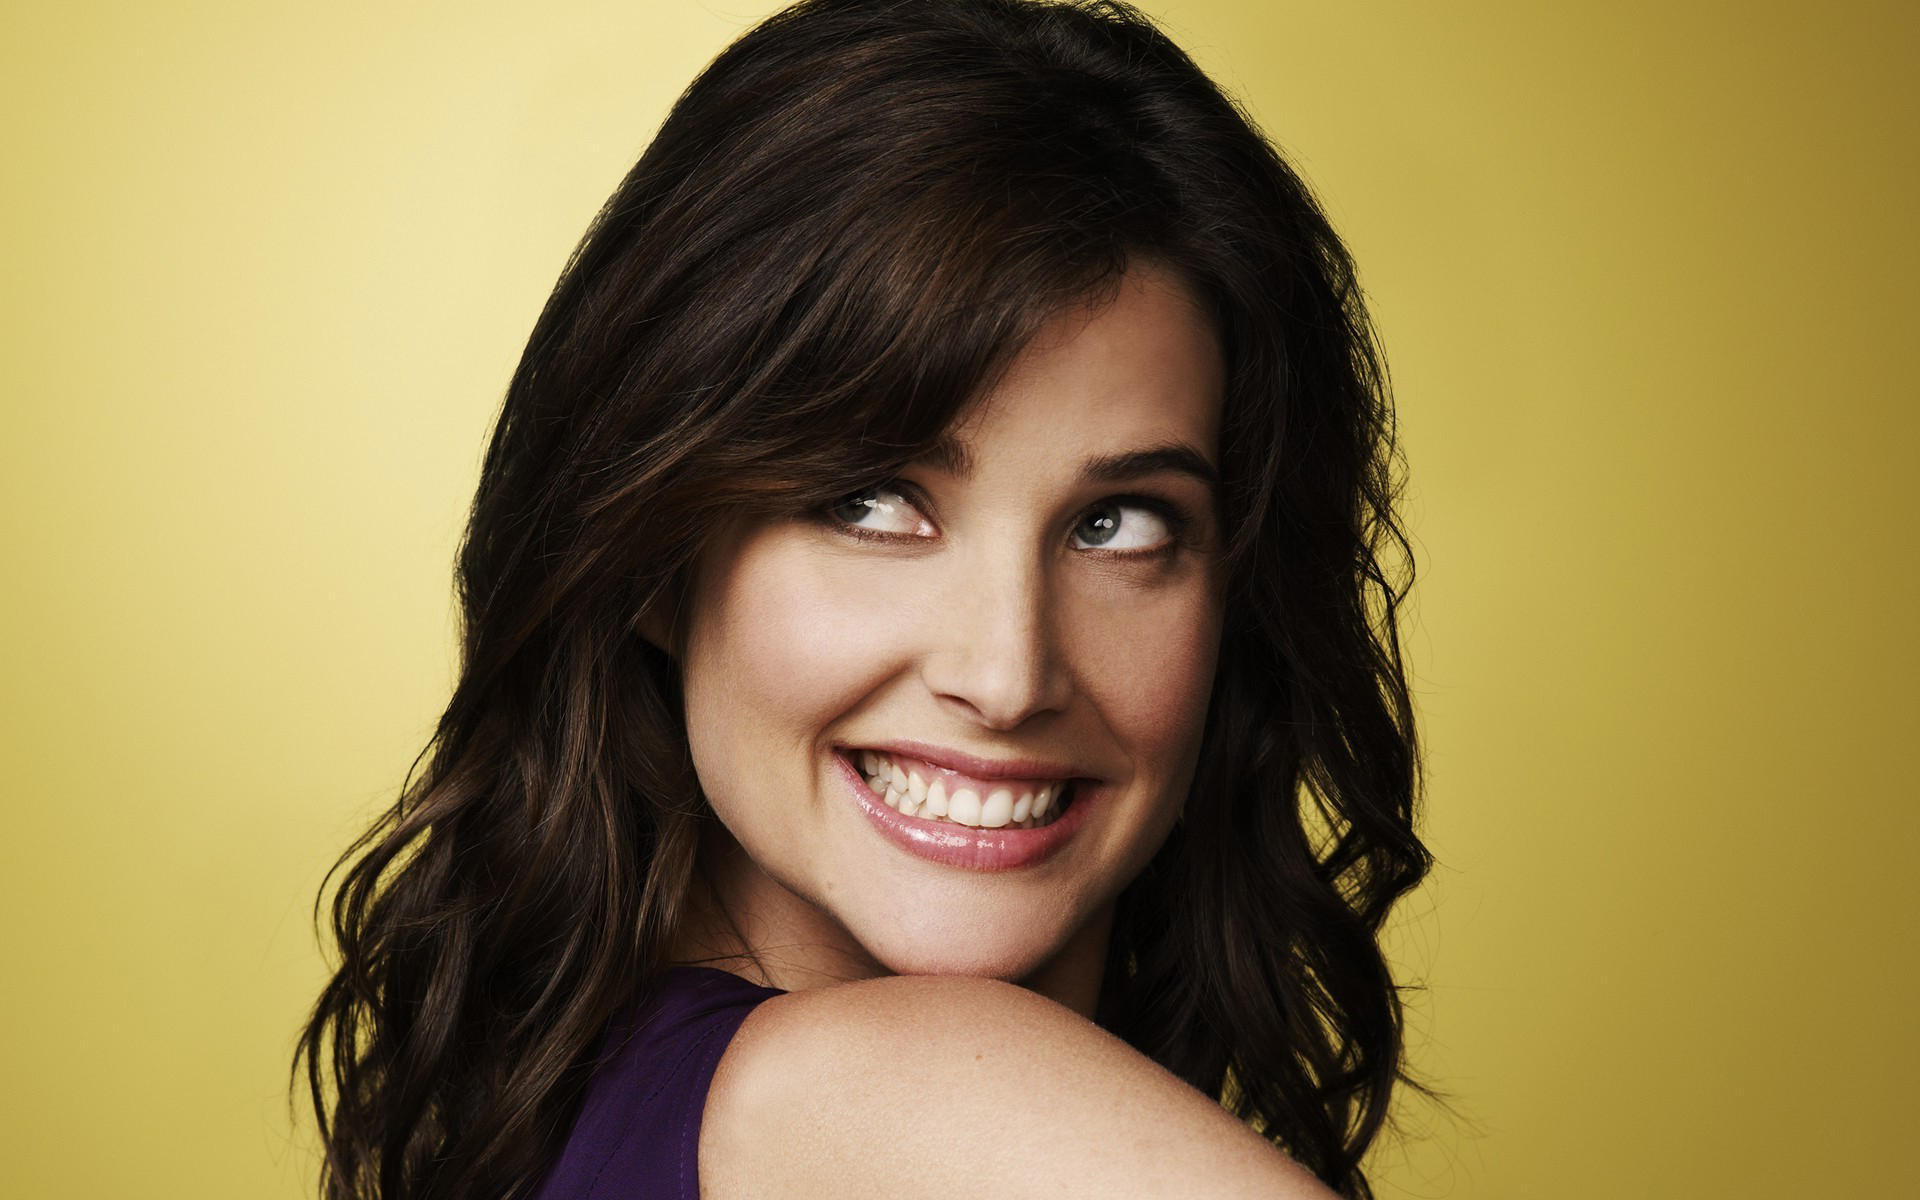 cobie smulders wallpapers - photo #14